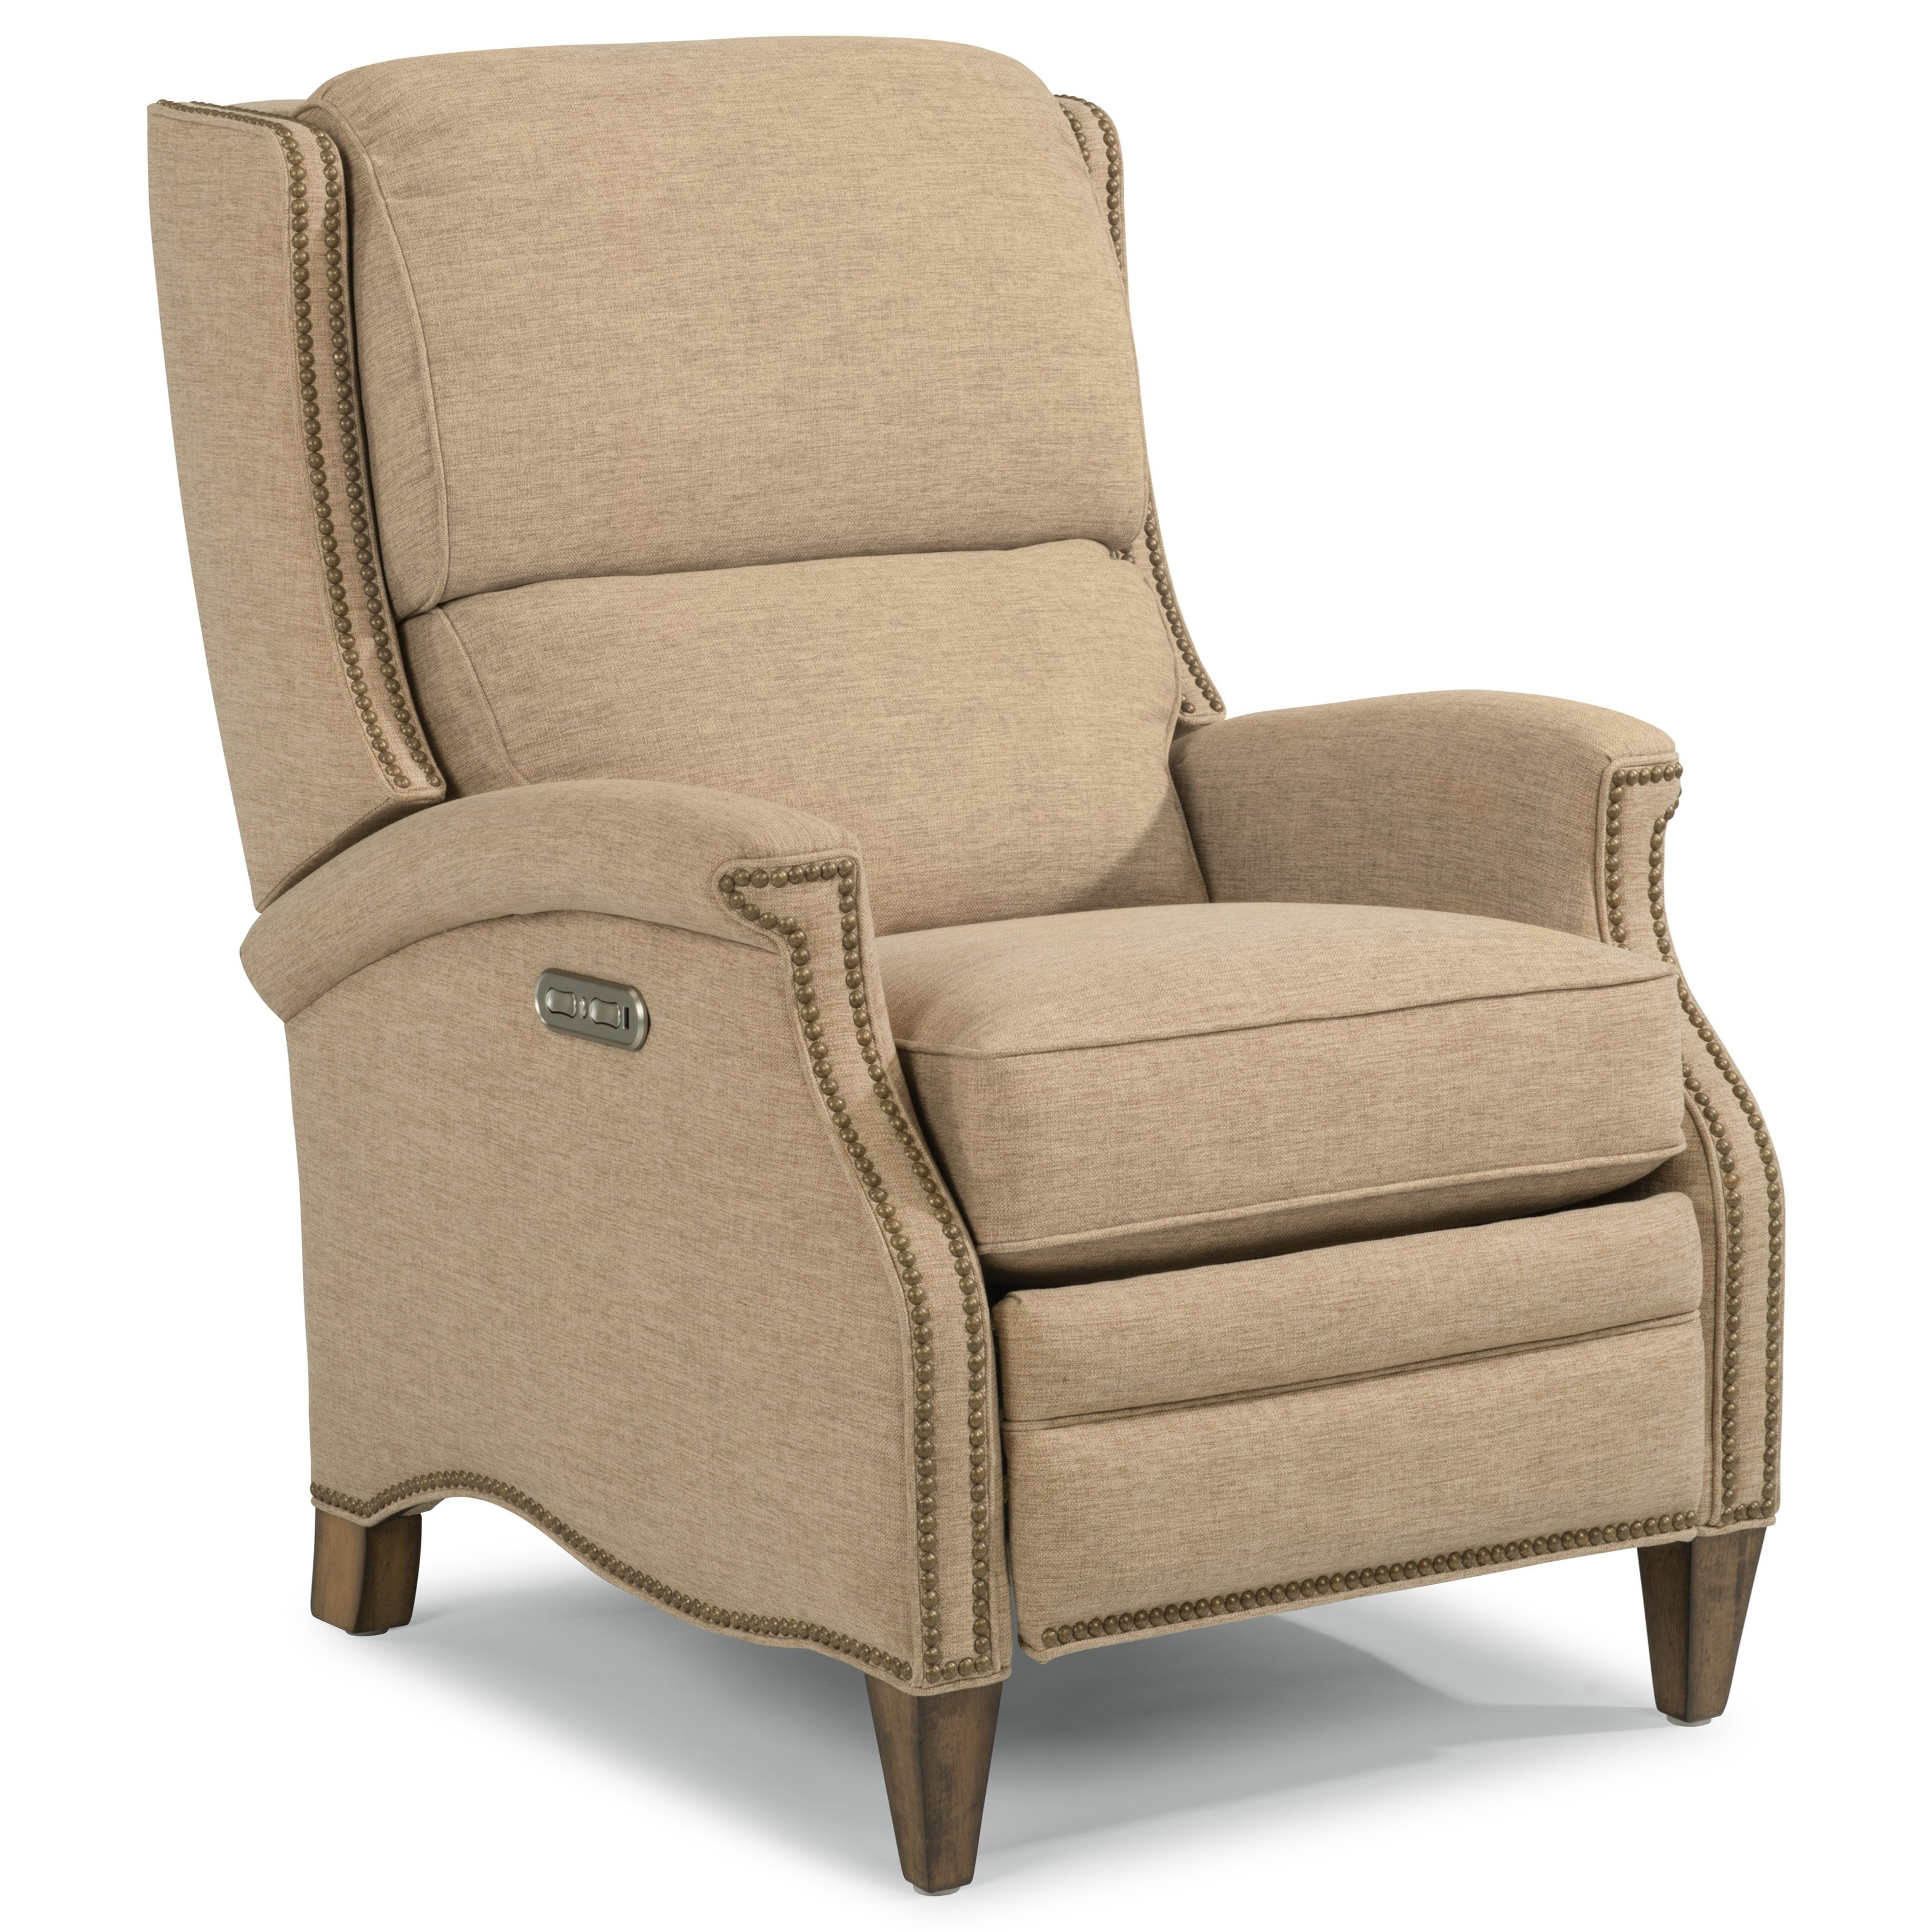 Power High-Leg Recliner with Power Headrest